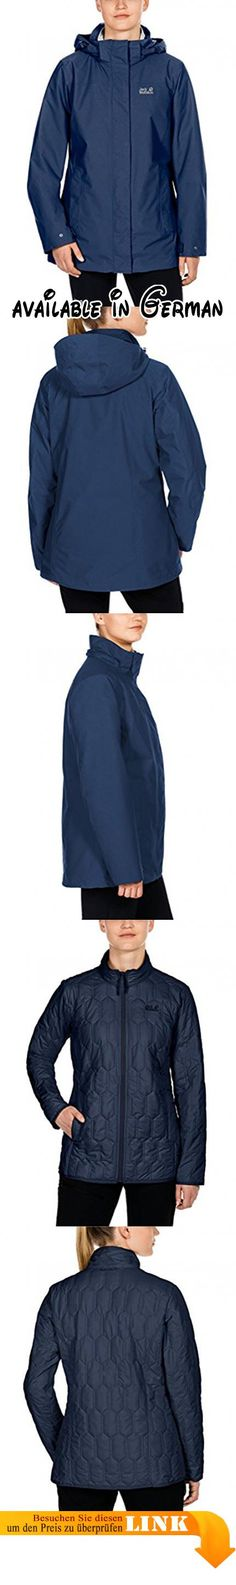 Jack Wolfskin Damen Vernon Women 3-in-1 Jacke, Dark Sky, XXL. 3-in-1 Jacke. Wasserdicht, Winddicht. Atmungsaktiv. Herausnehmbare wattierte Innenjacke #Sports #OUTDOOR_RECREATION_PRODUCT